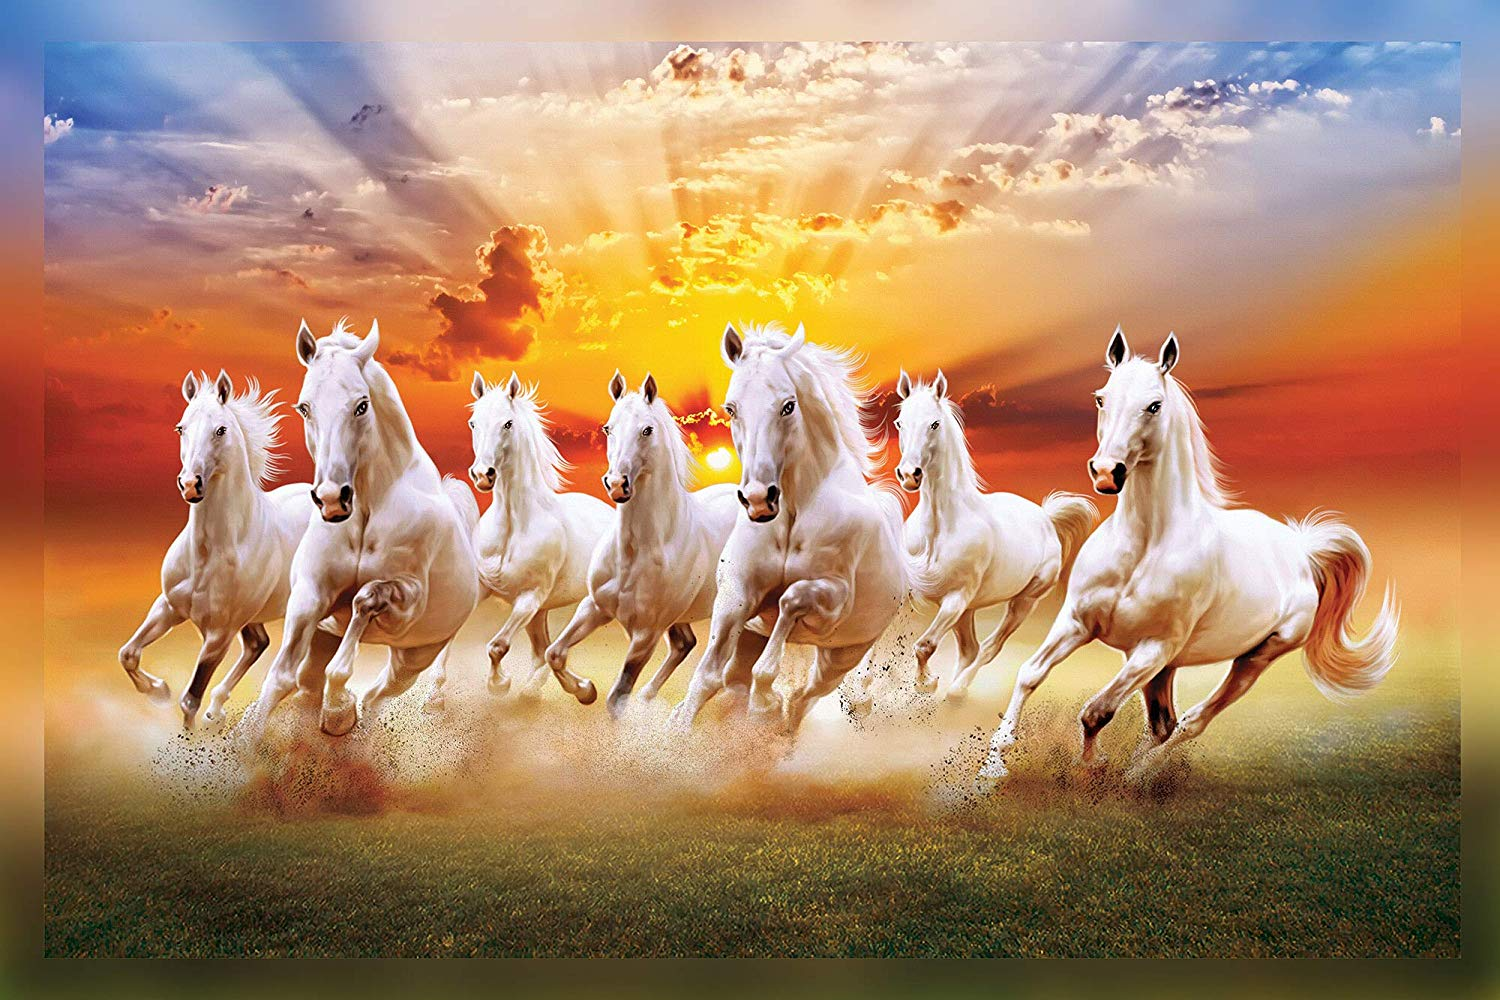 Seven Running Horses Painting Hd Print Wall Sticker Seven Running Horses 1453636 Hd Wallpaper Backgrounds Download